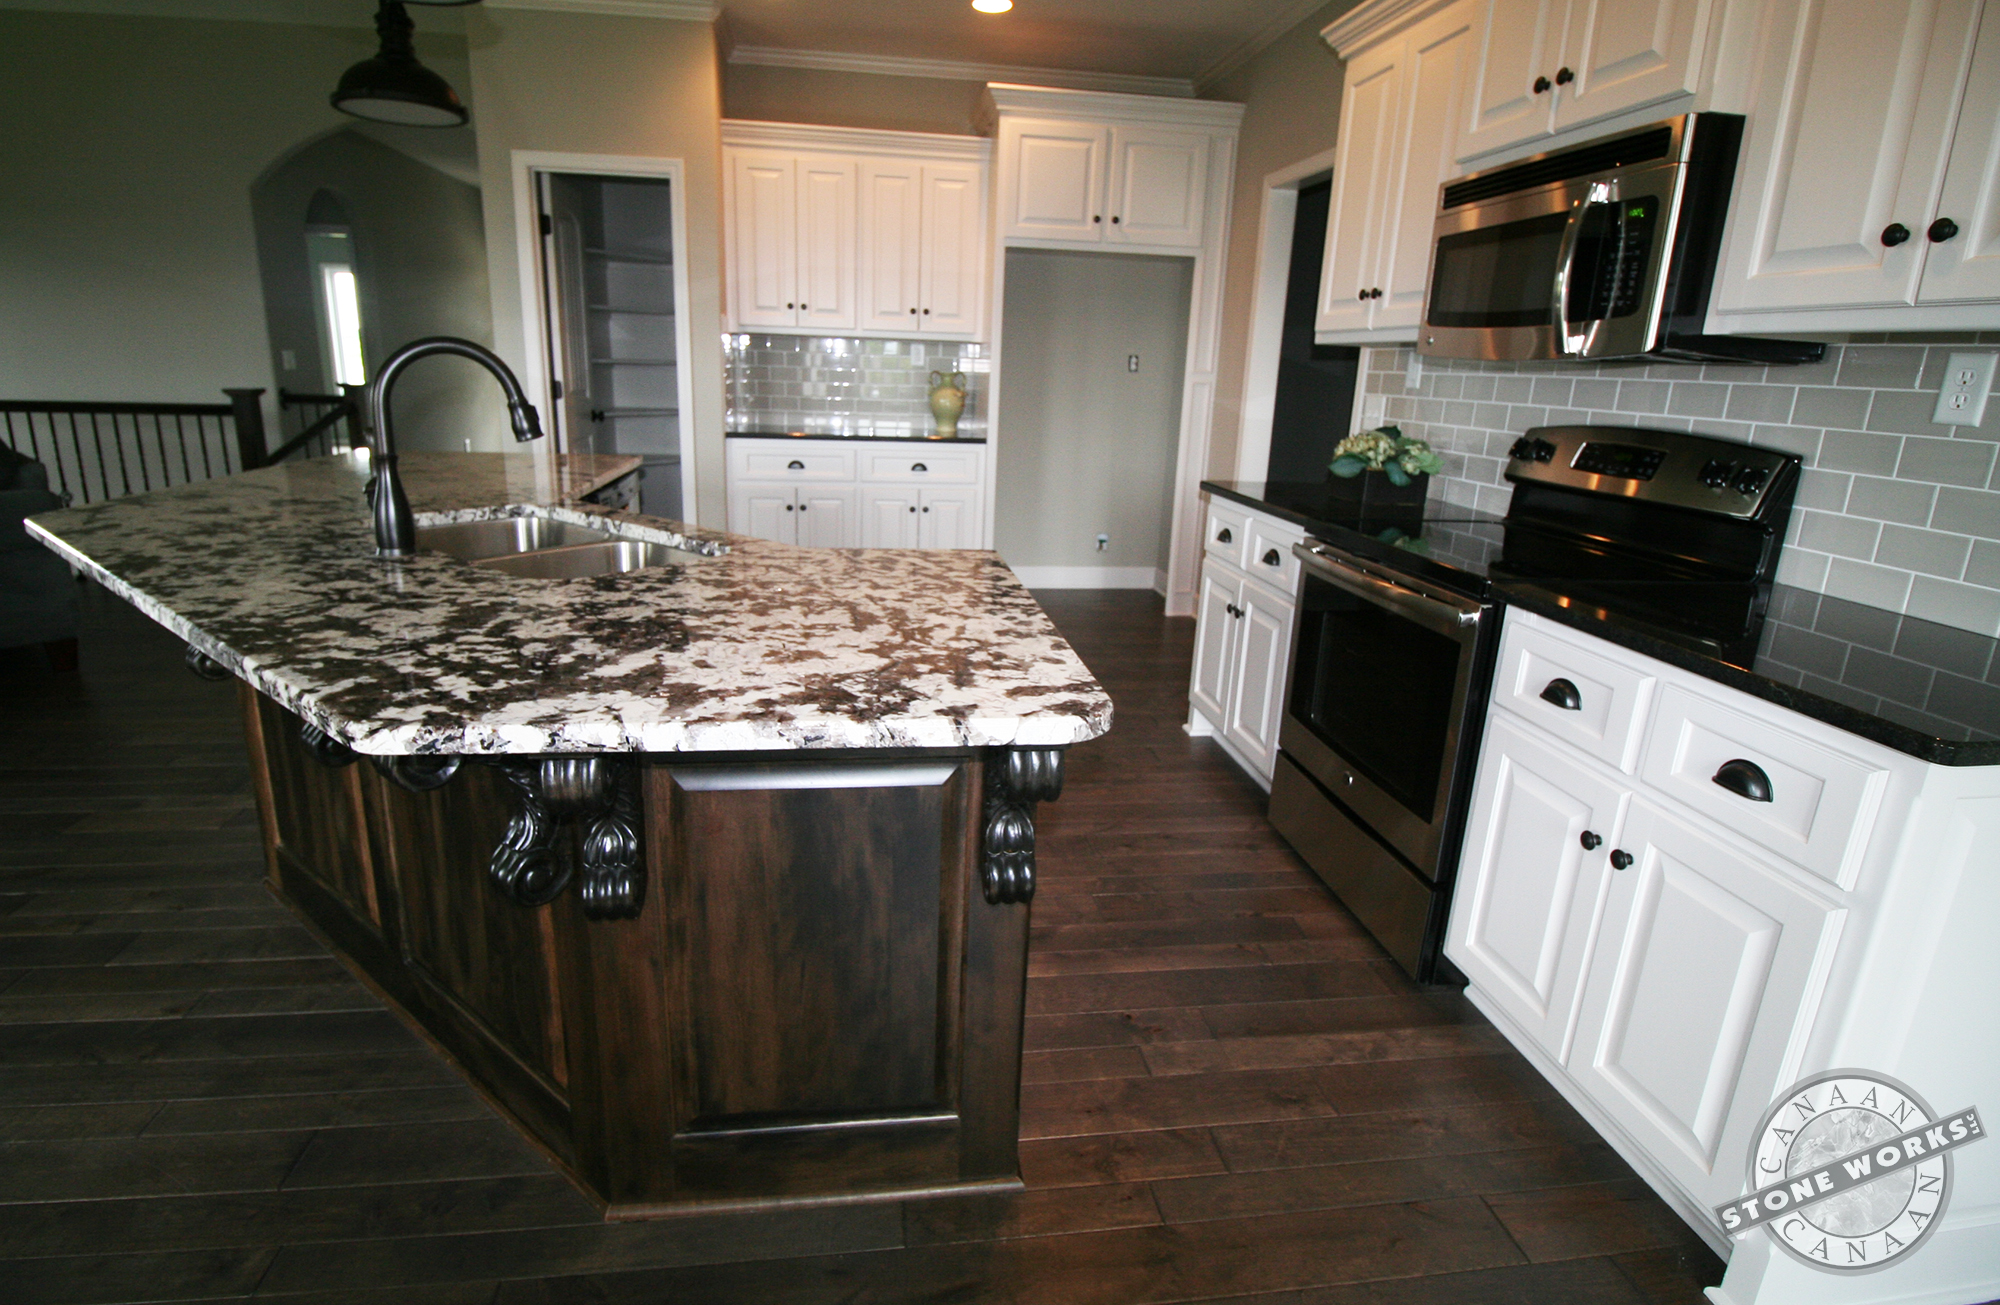 Canaan Stone Works custom fabricated countertops, Olympus Custom Builders, Light and dark finishes, new Home, Pine Grove Limited, Kansas City, MO